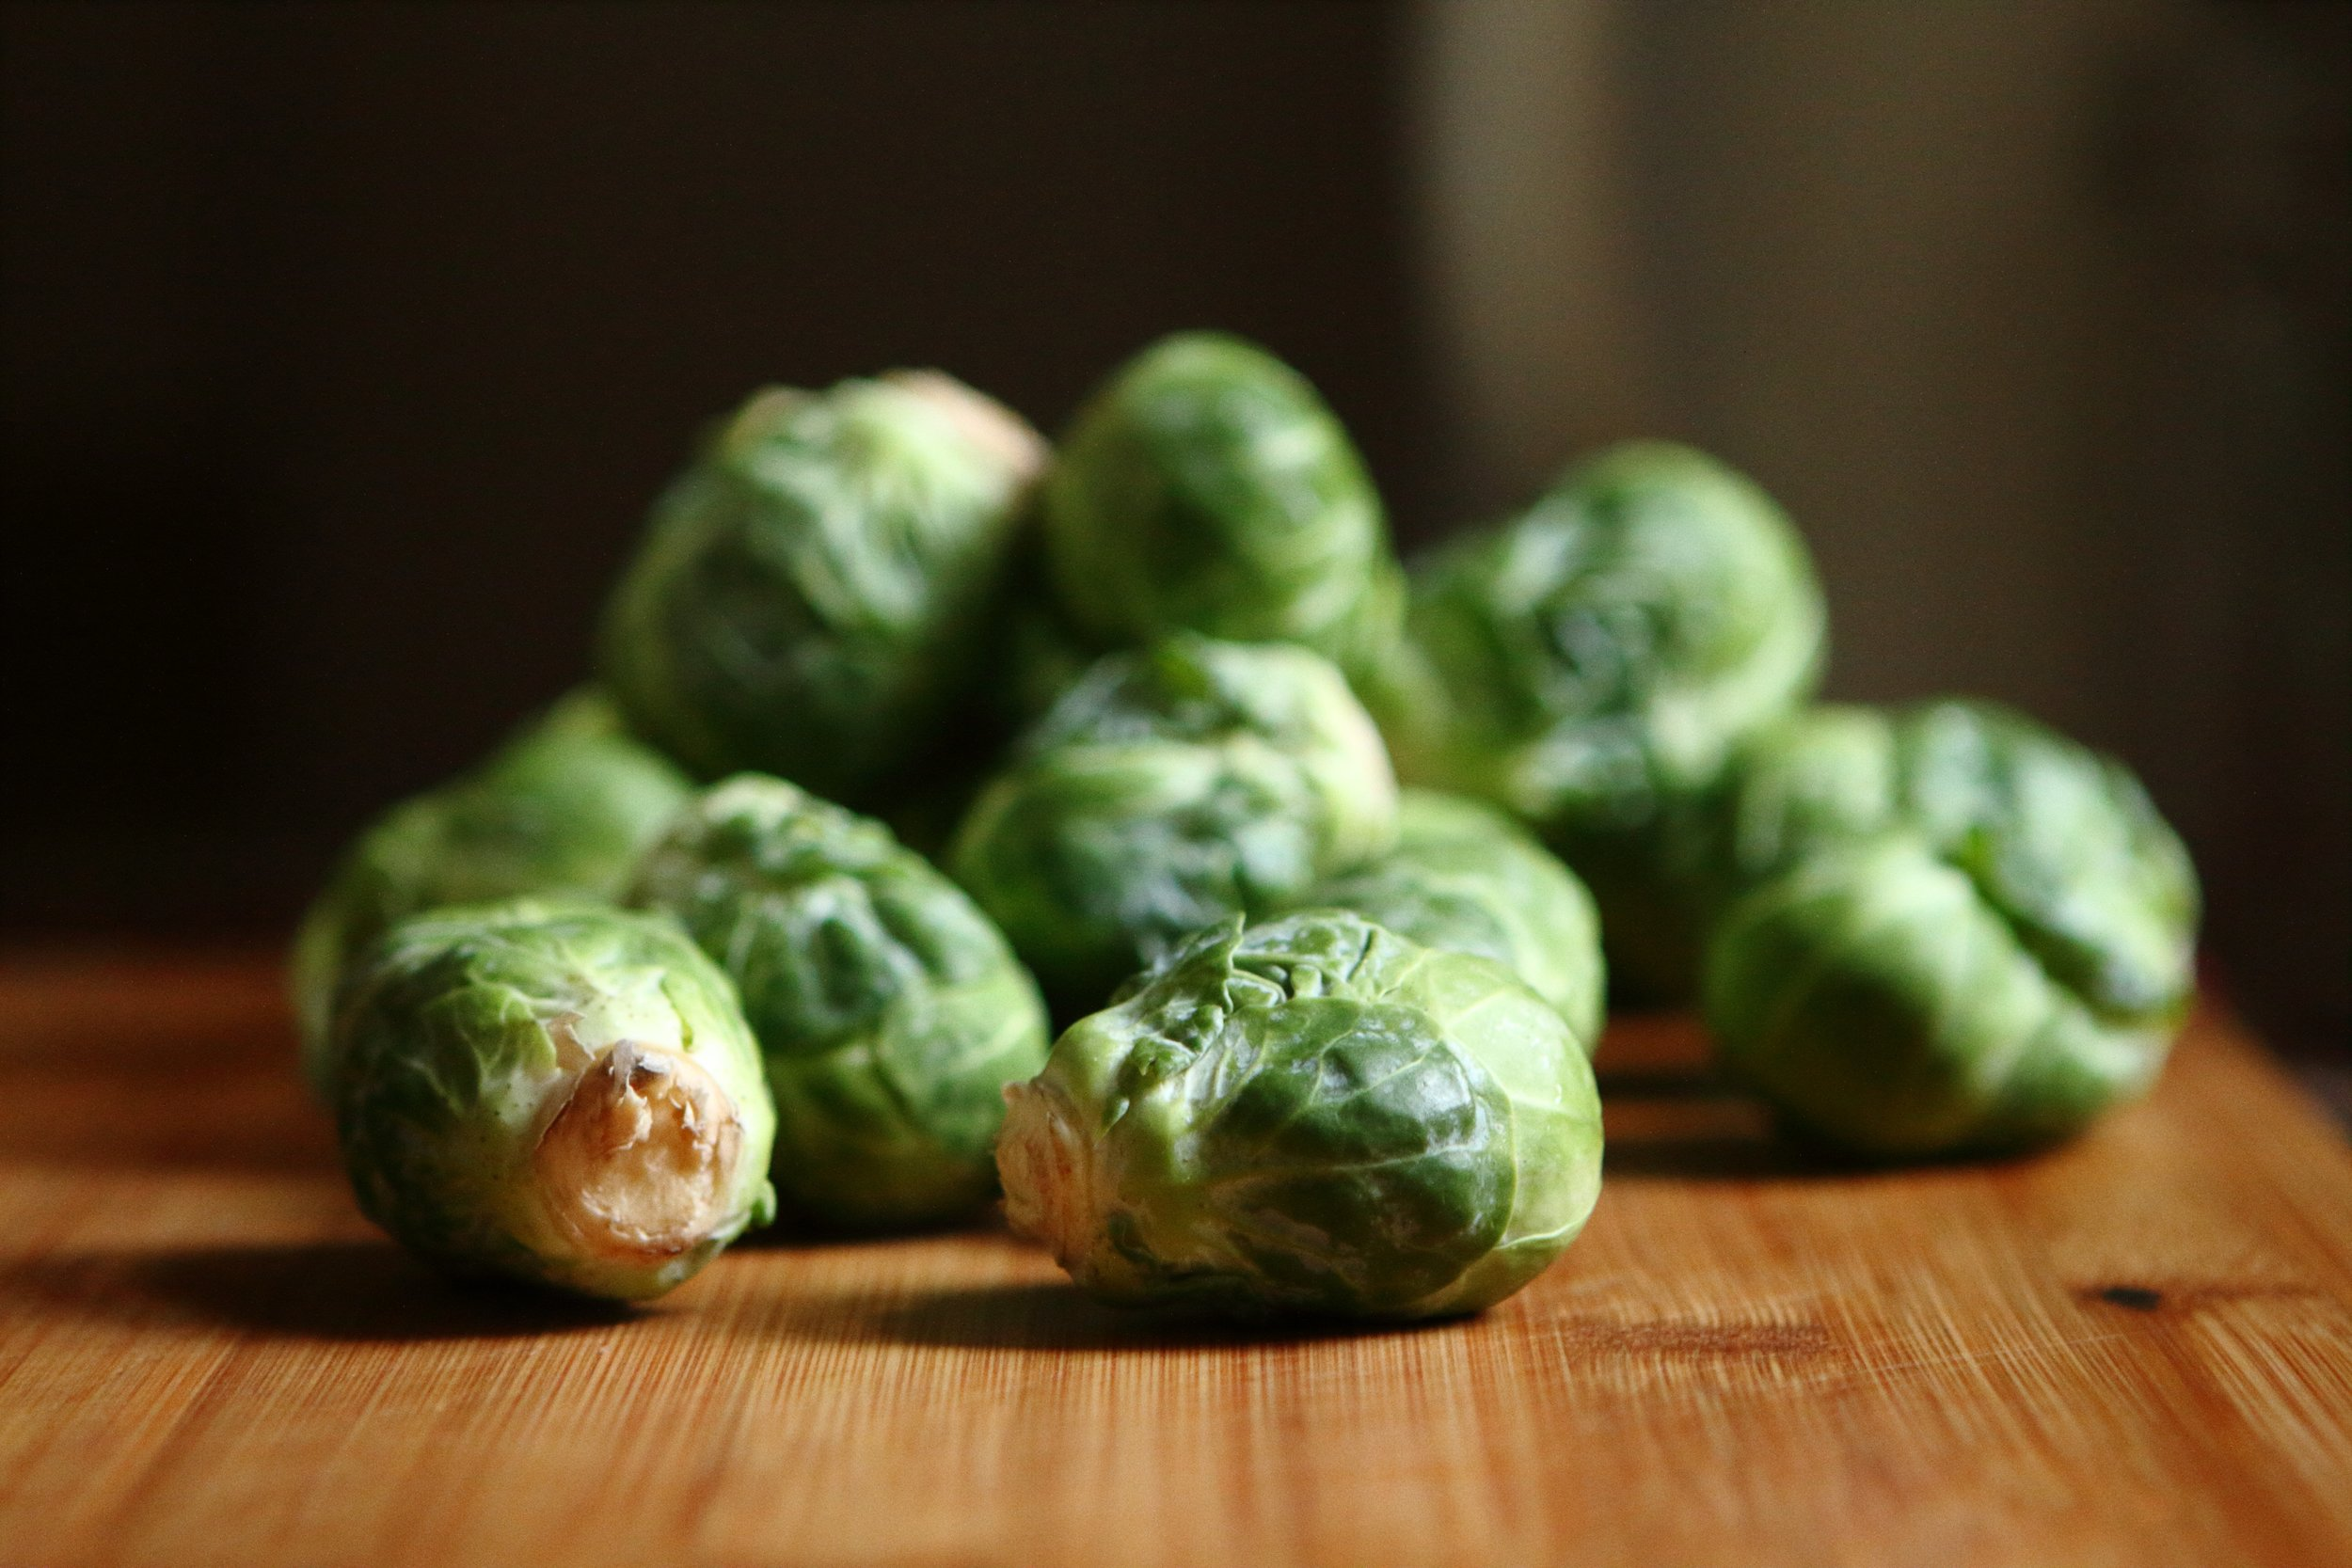 Episode 6 - You ordered a side of Brussels sprouts?